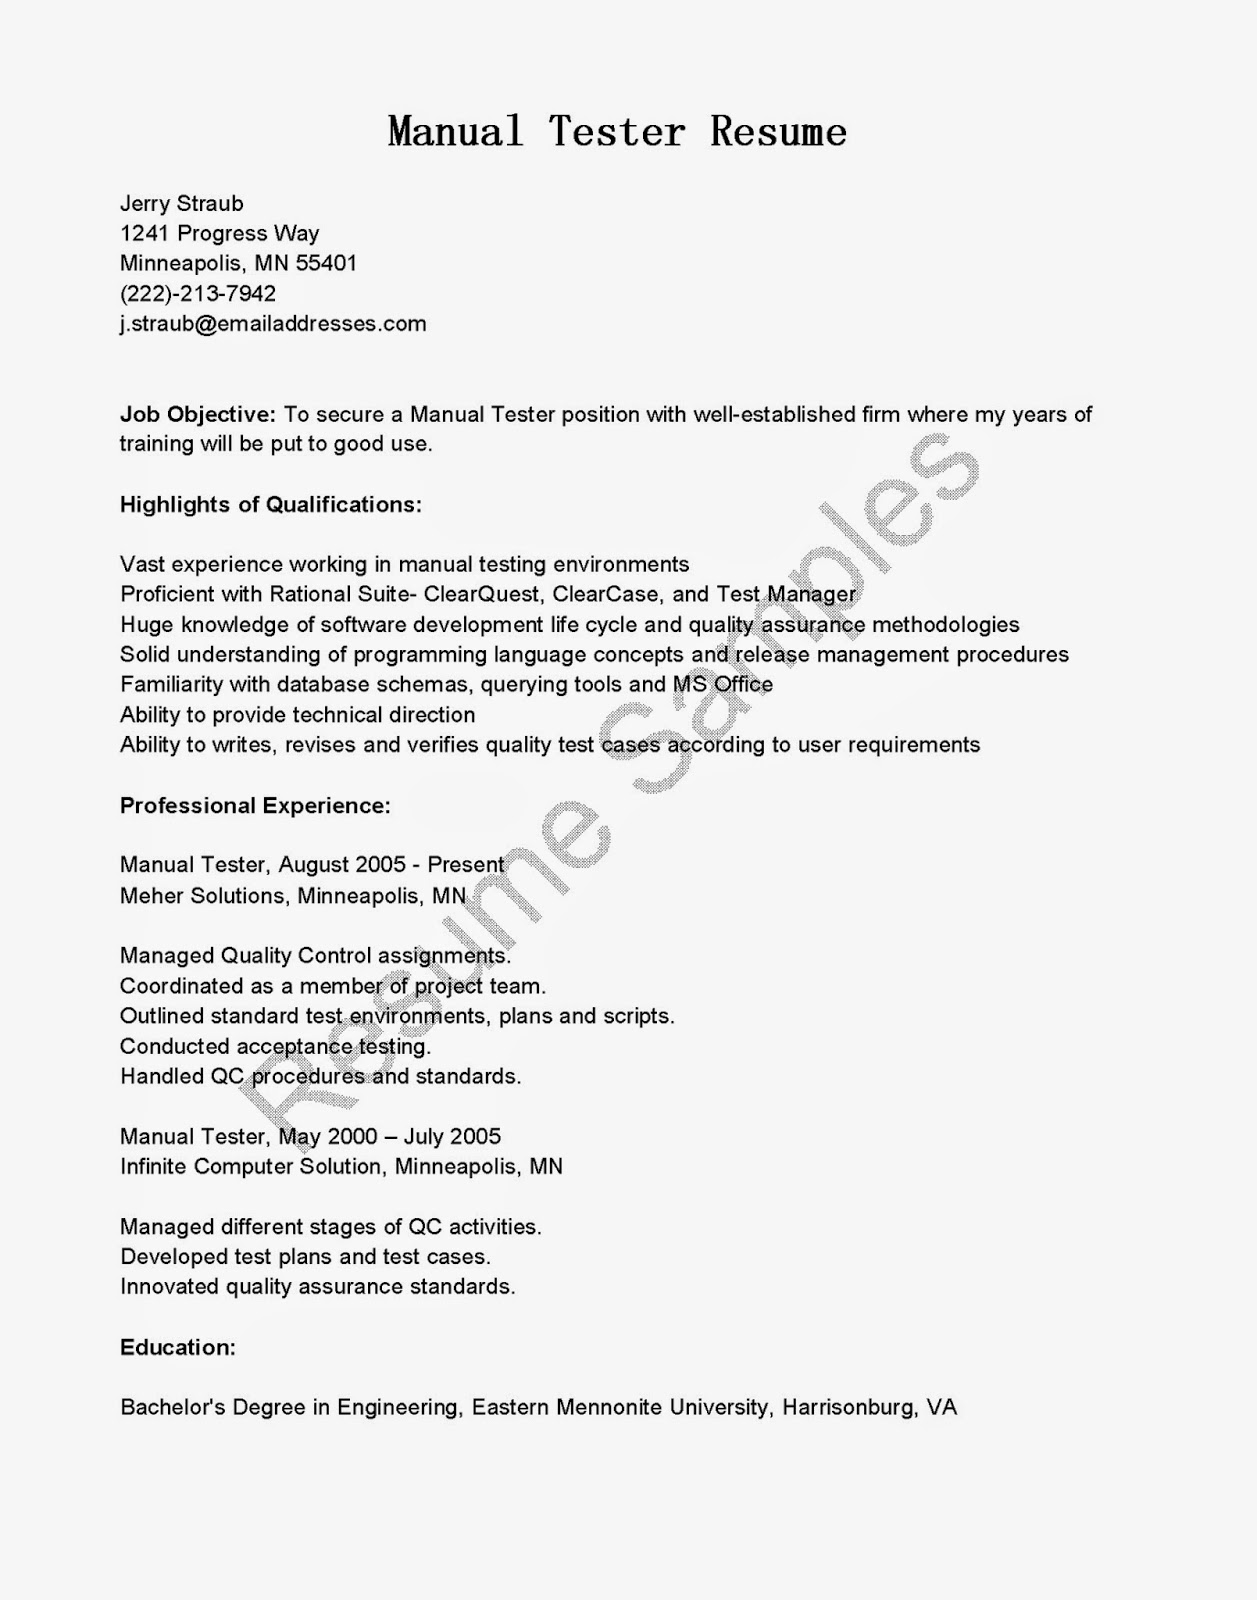 resume sample for software tester - Software Tester Resume Sample